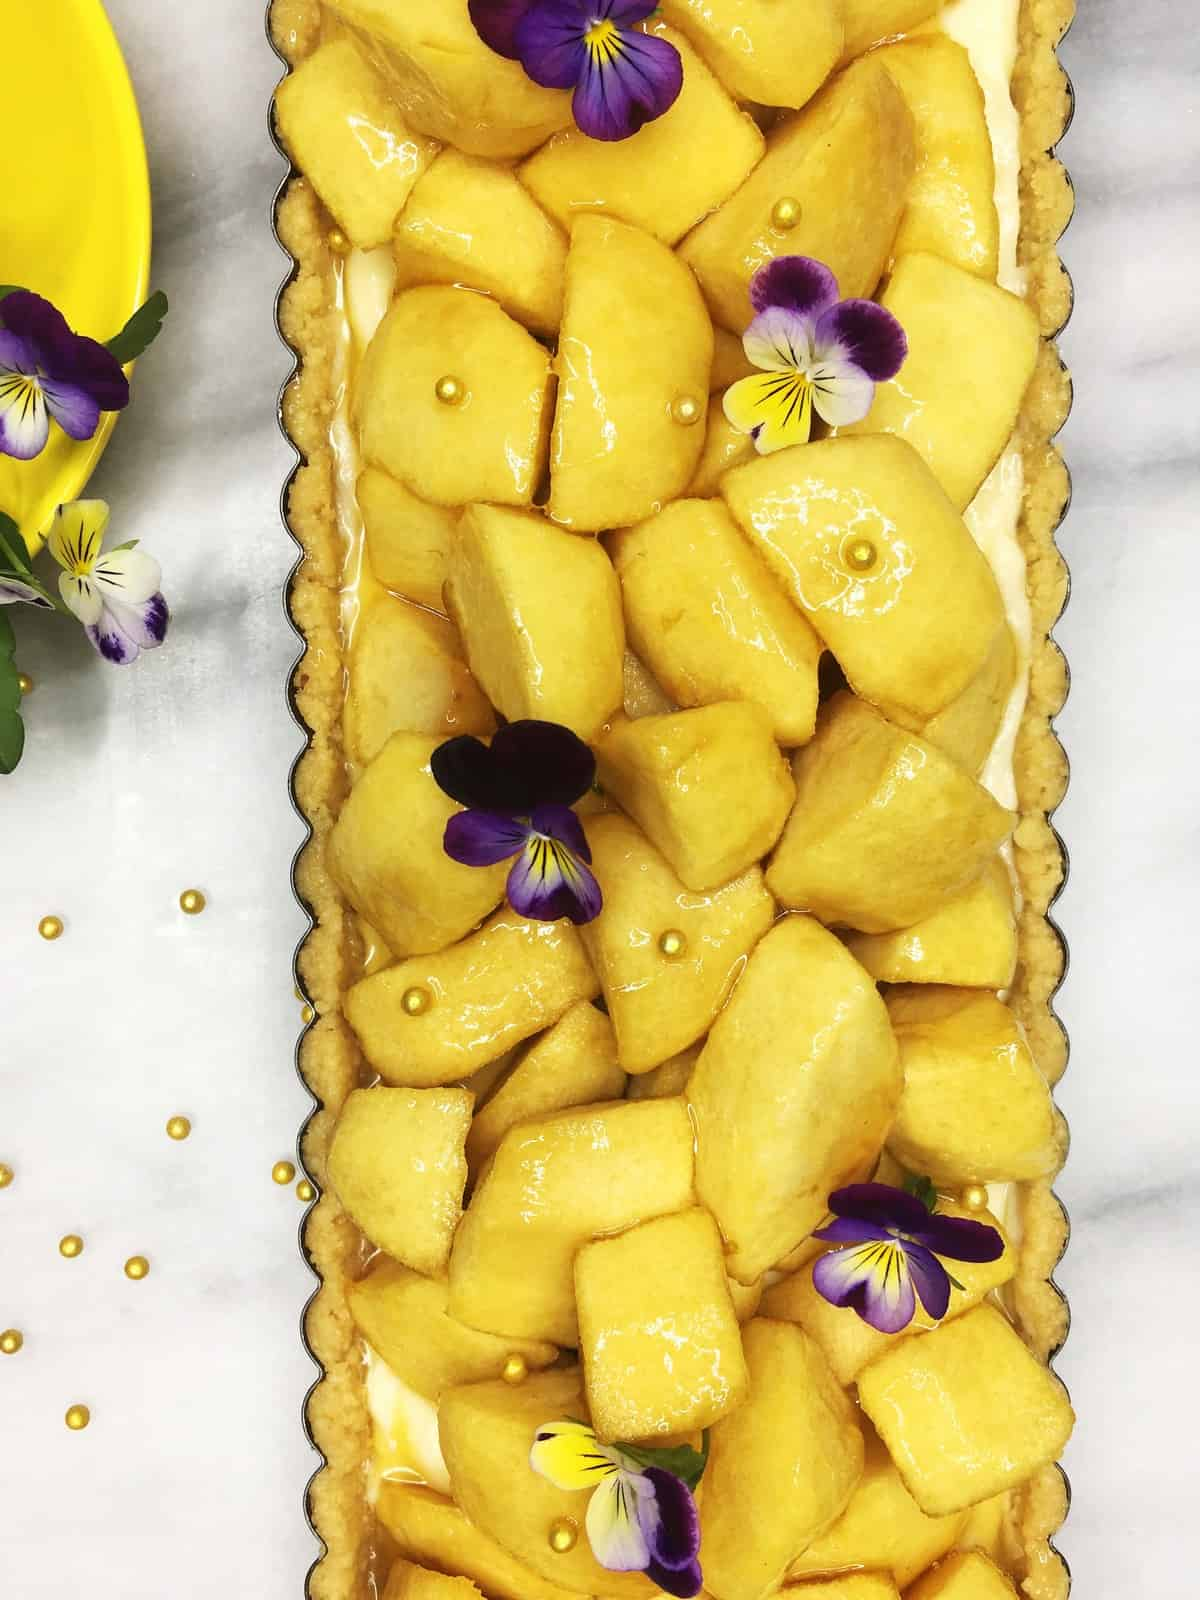 French apple tart garnished with apples in a tart pan with a yellow cup and glod pearls on the background